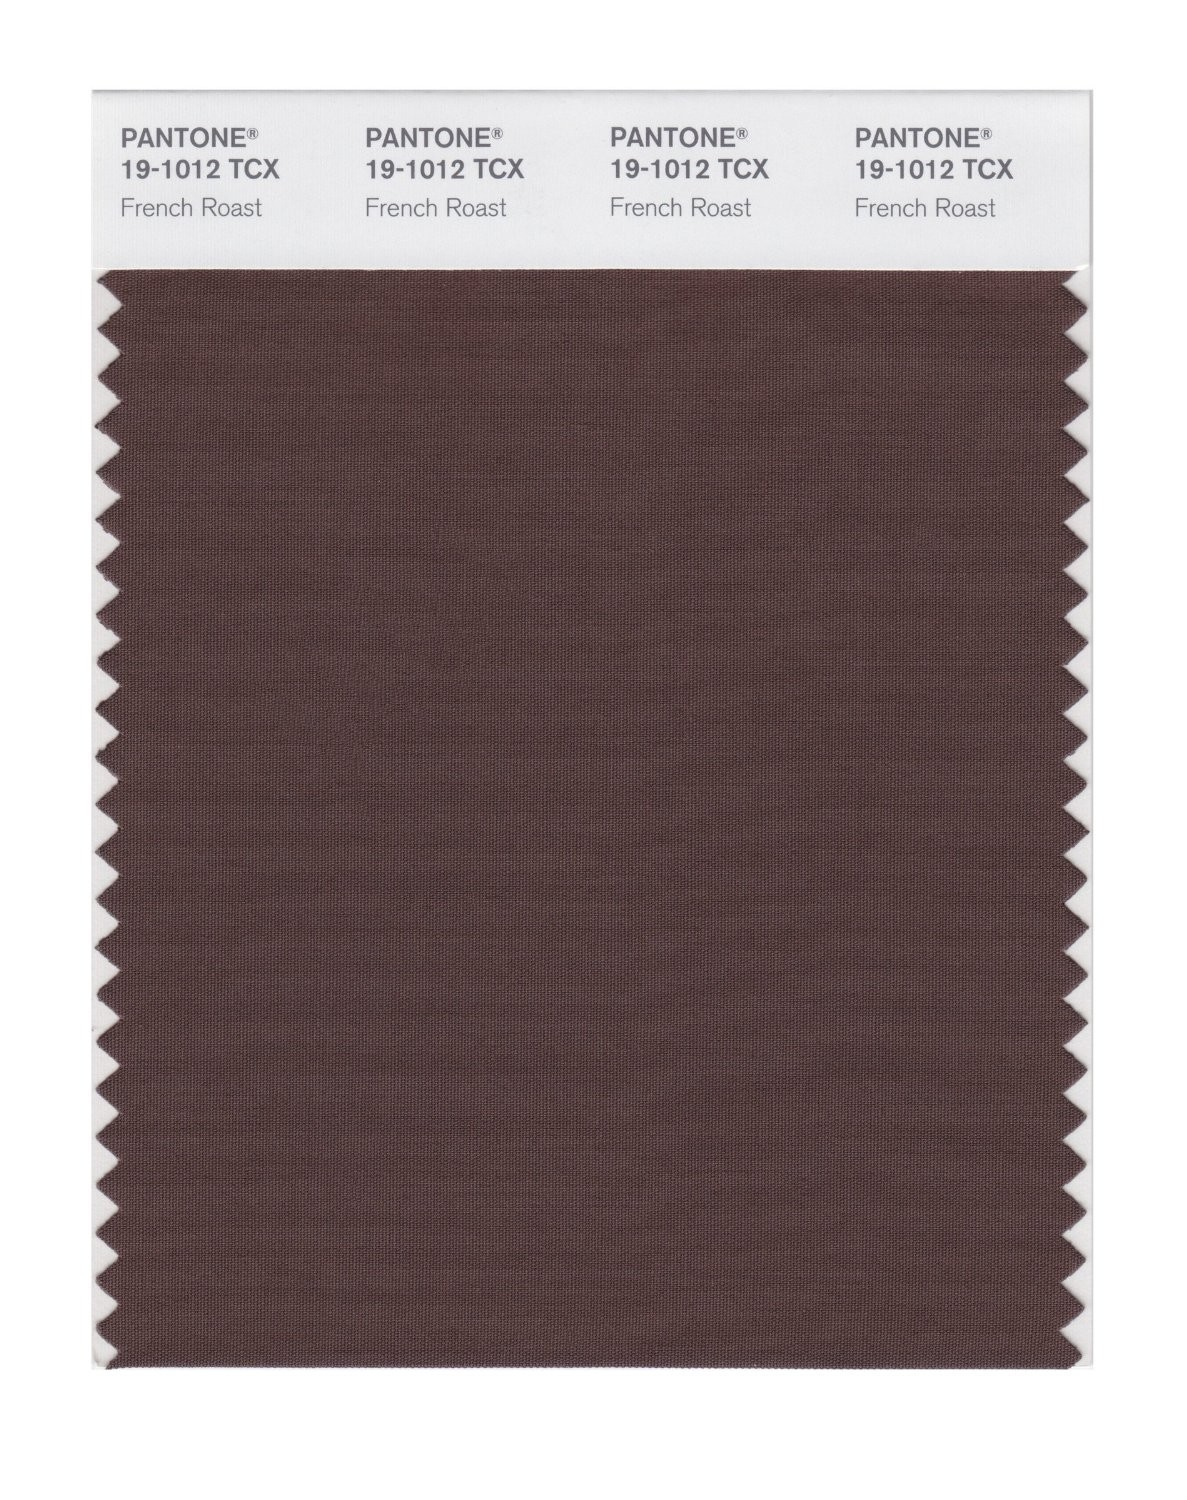 Pantone 19-1012 TCX Swatch Card French Roast